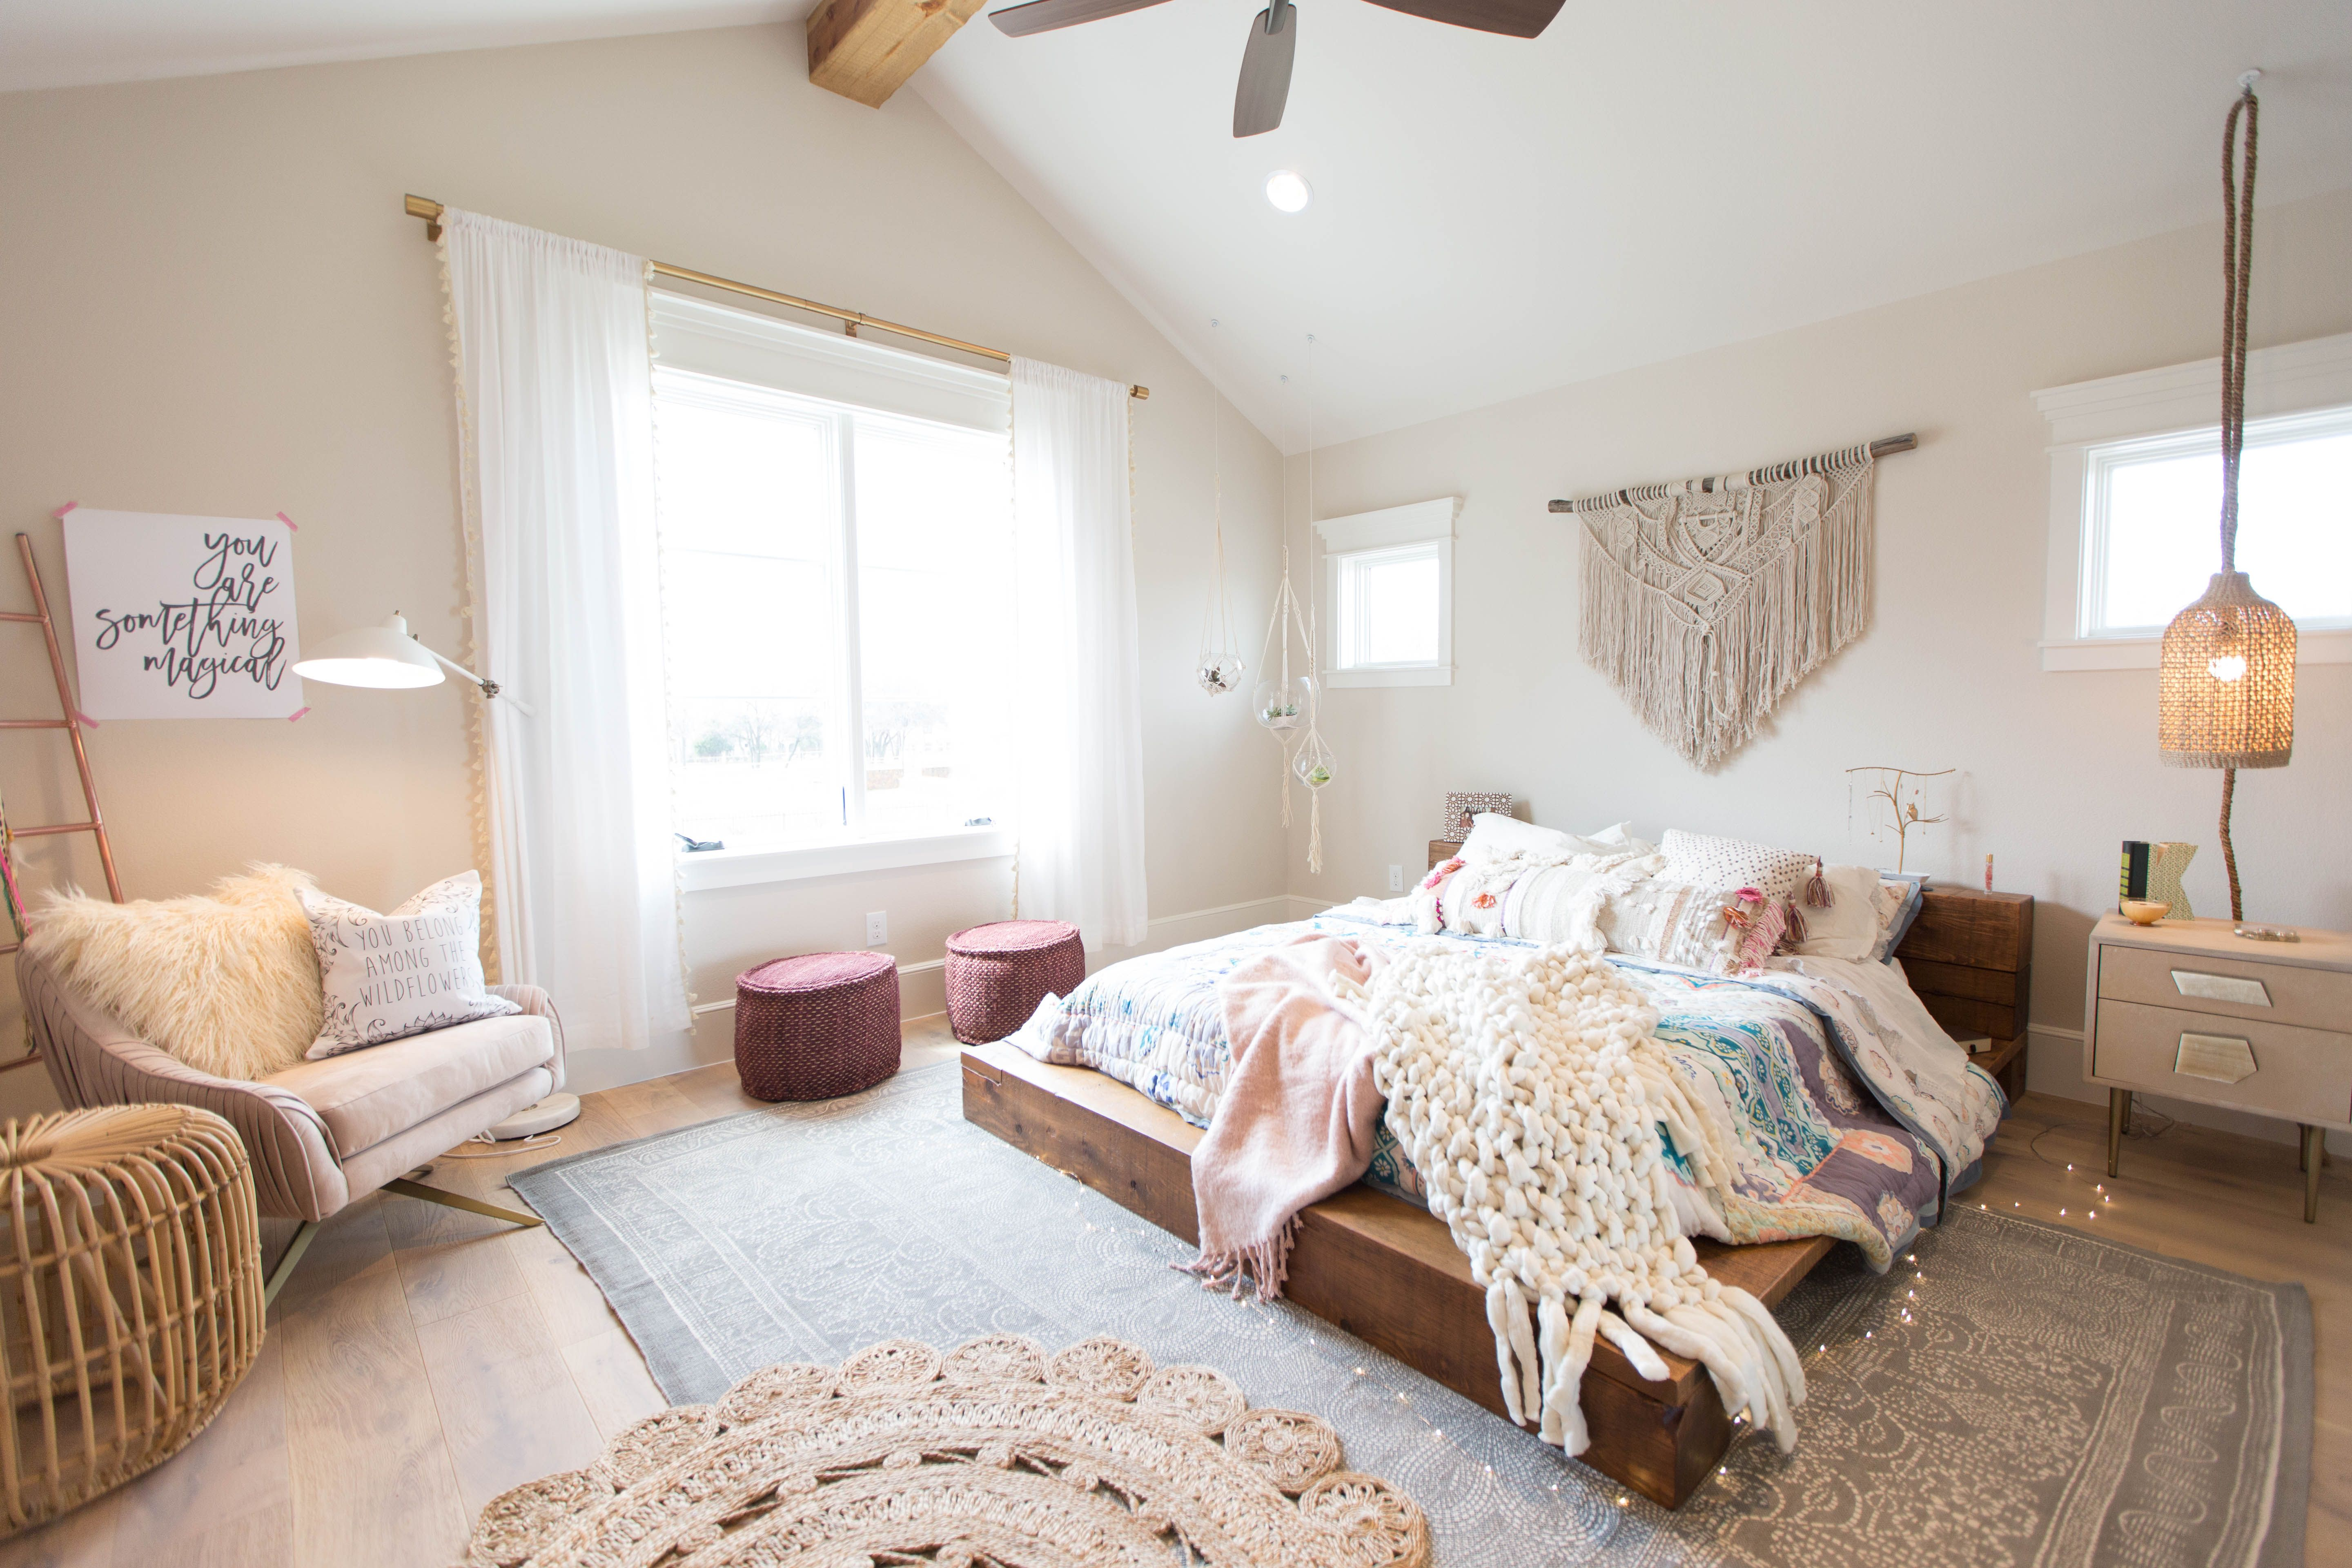 Lay Back With A Book In This Easy, Boho Chic Teen Bedroom. #